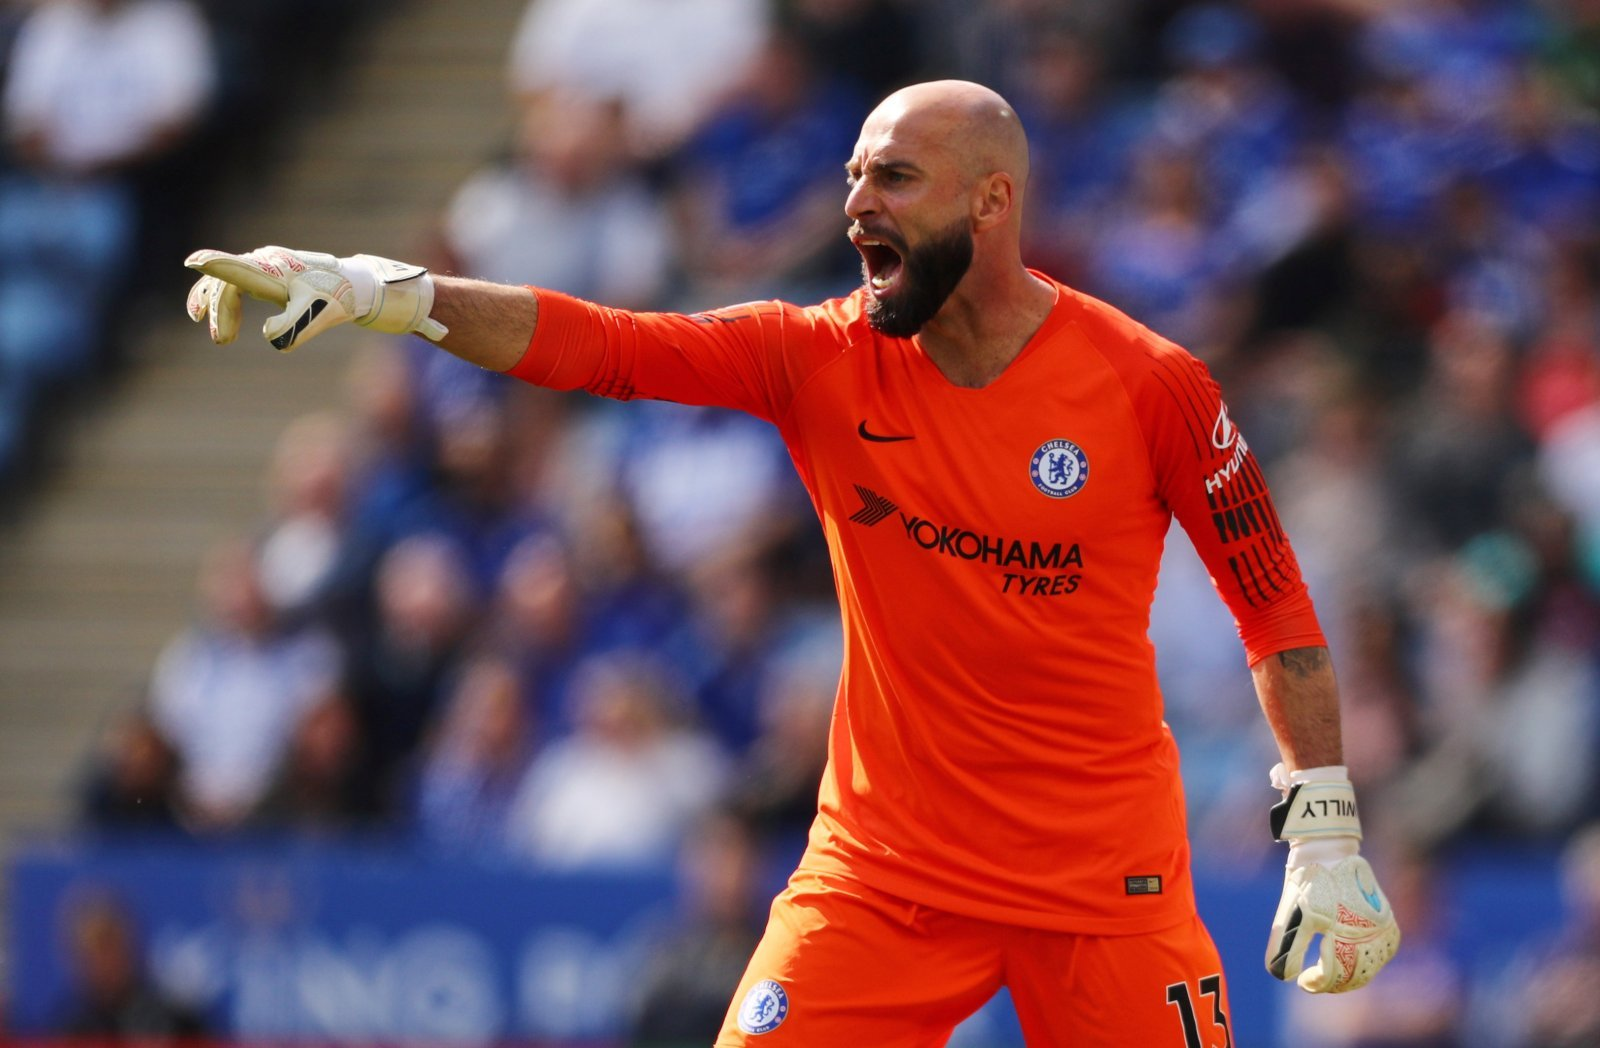 Introducing: Willy Caballero, a pointless acquisition for West Ham